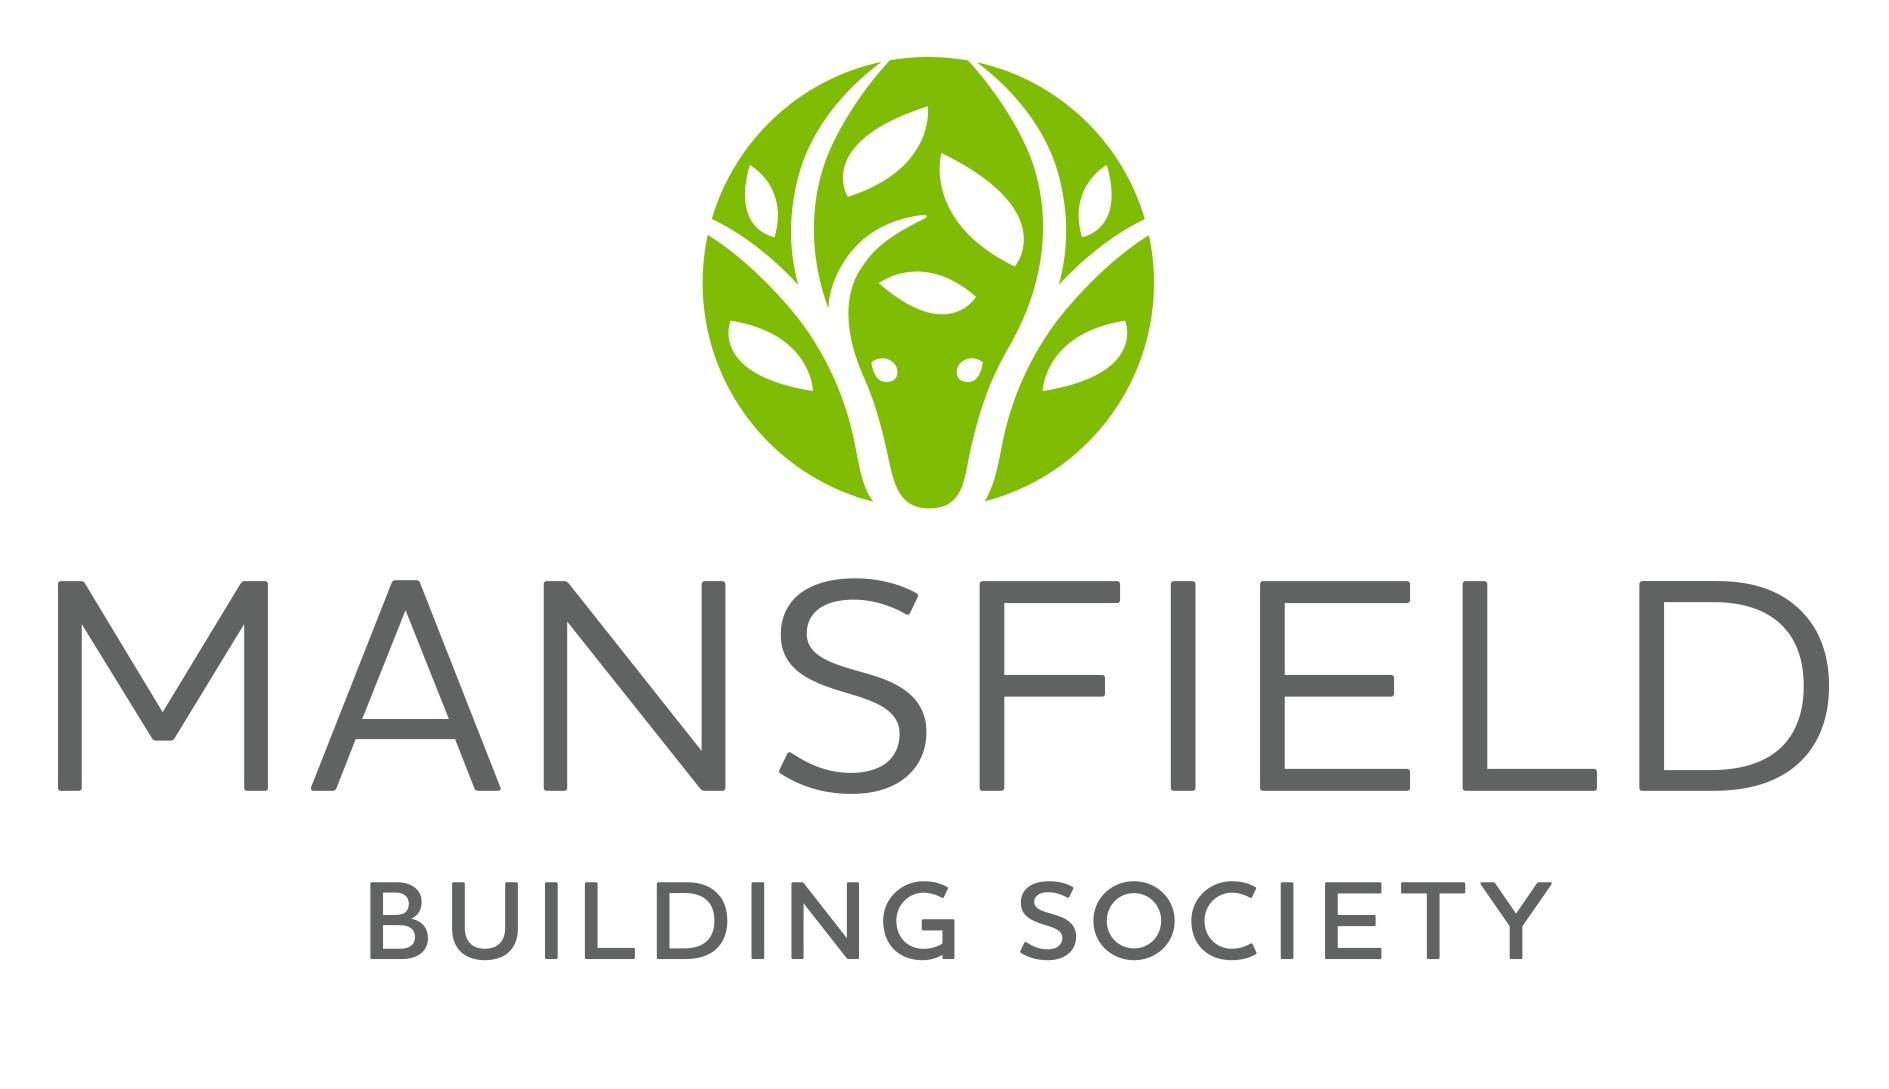 Mansfield Building Society